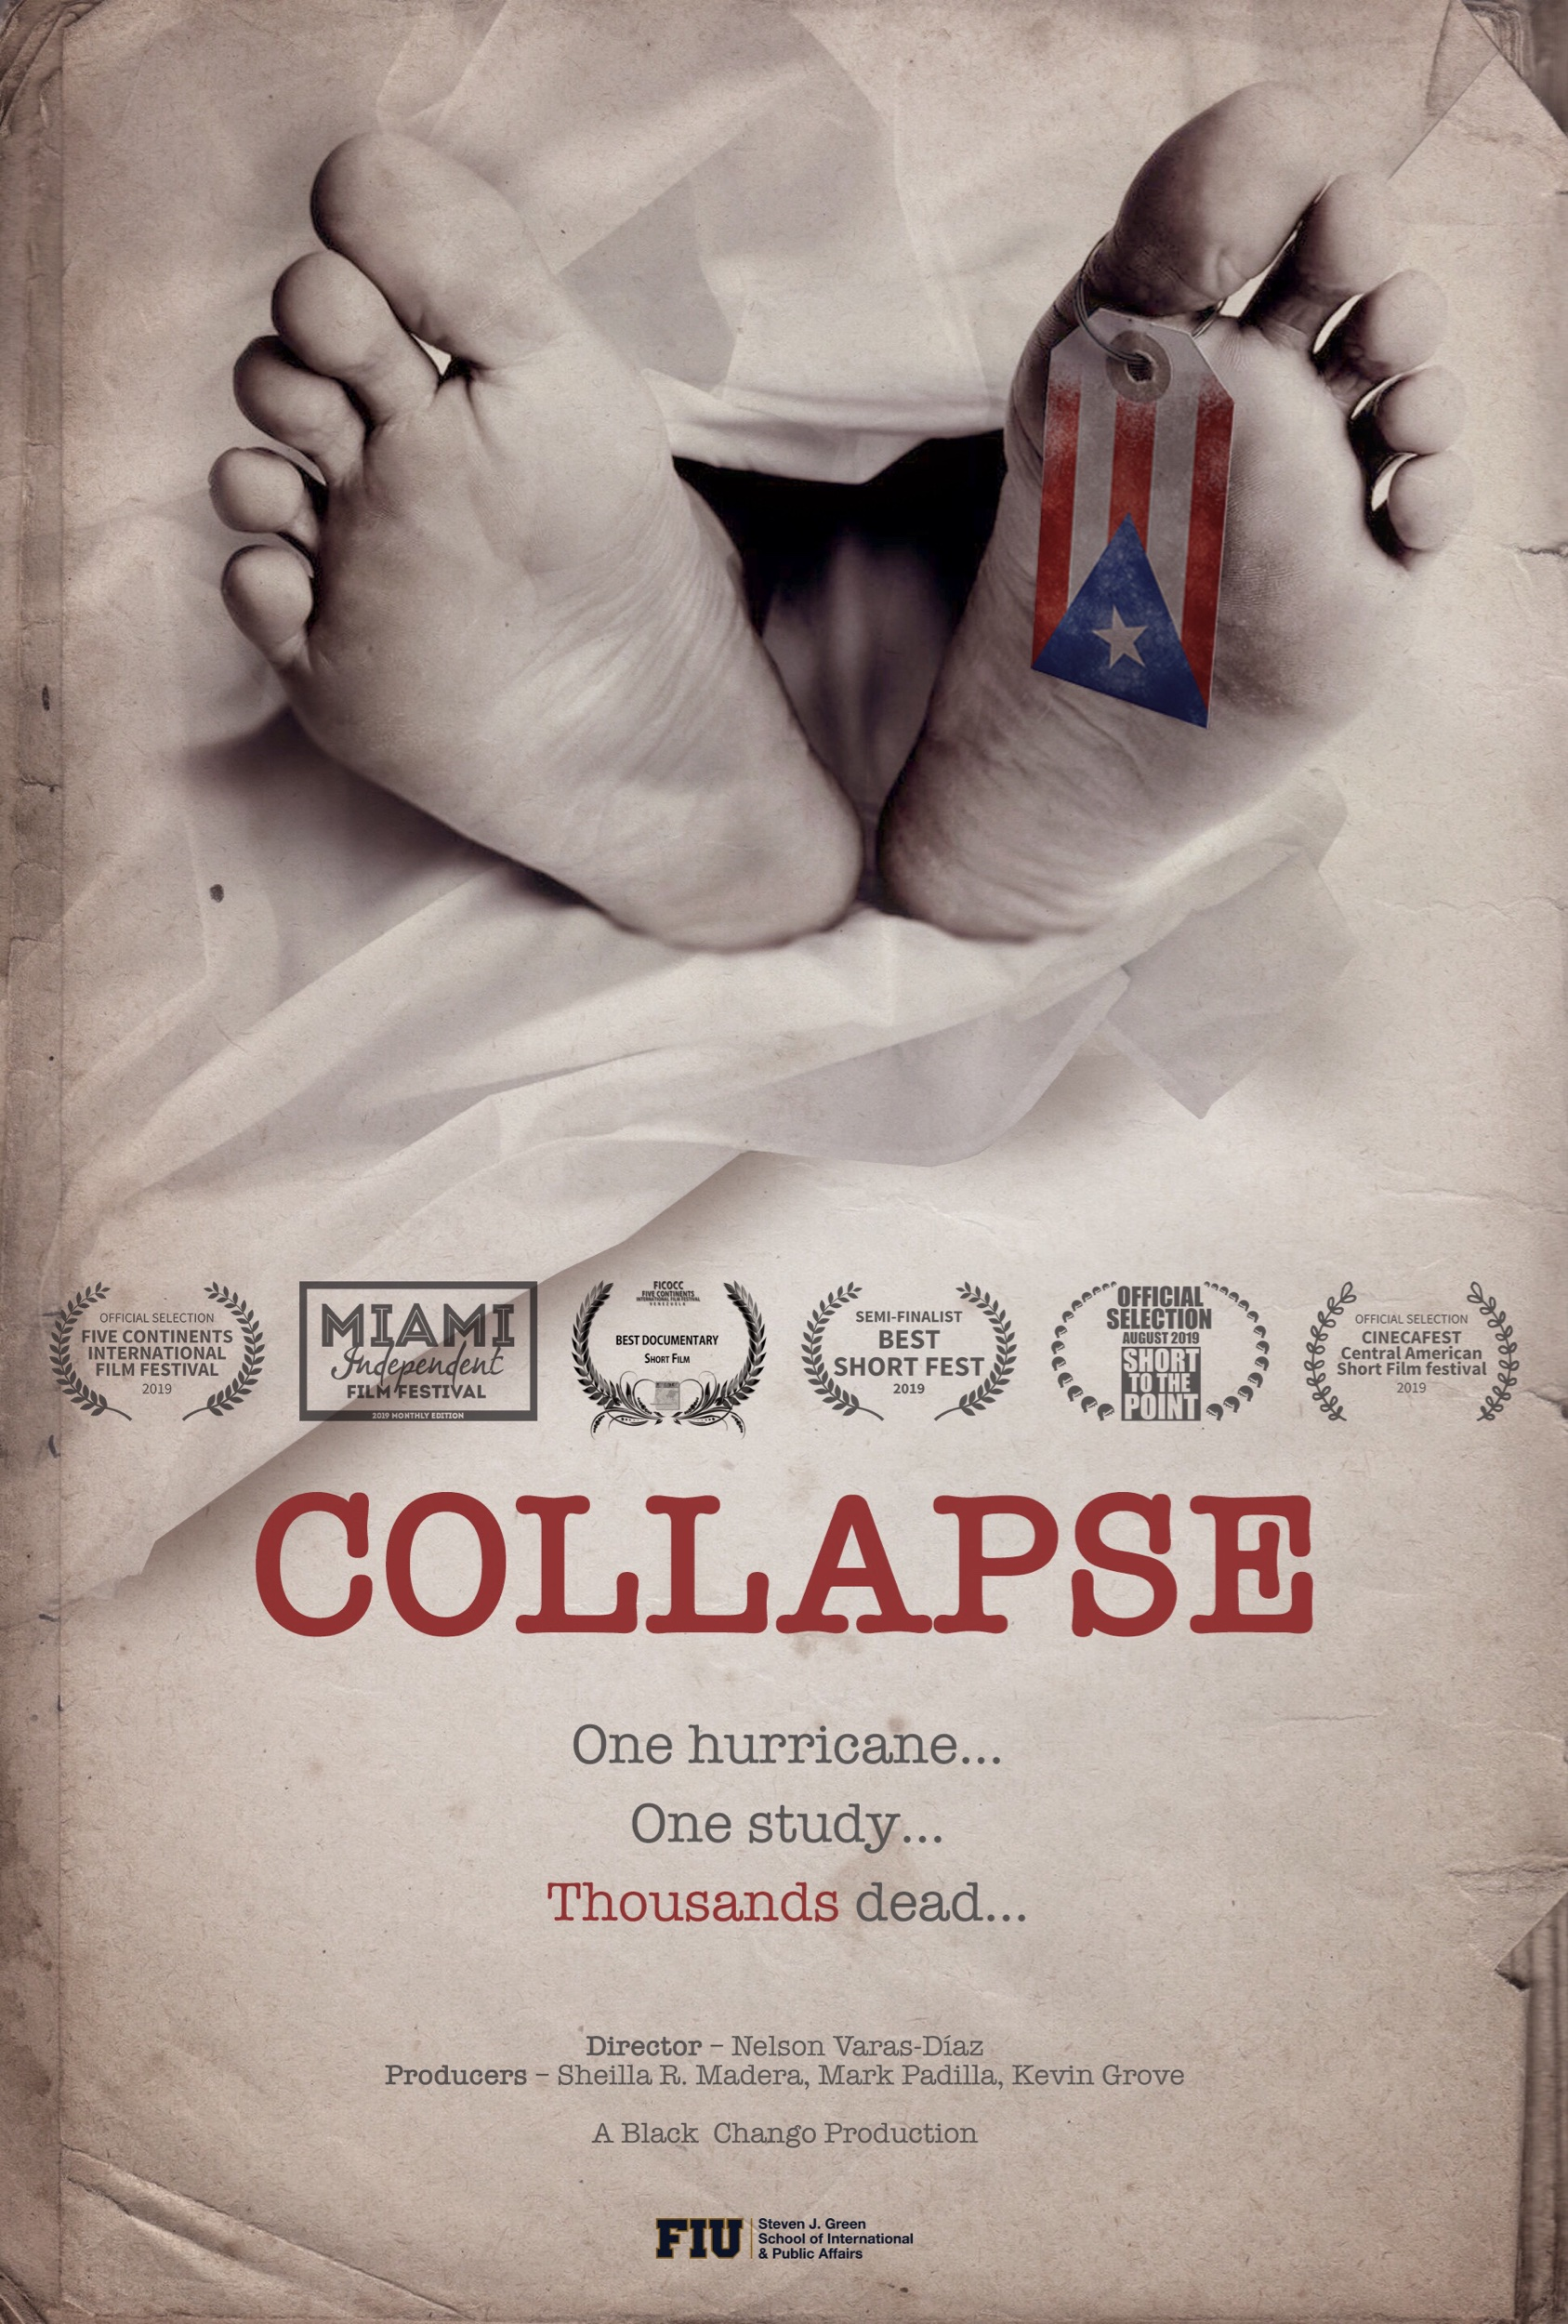 Collapse premiered for the community on this site on September 20, 2019. - It is now currently part of several international festivals. It will be back on this site on January 2020.